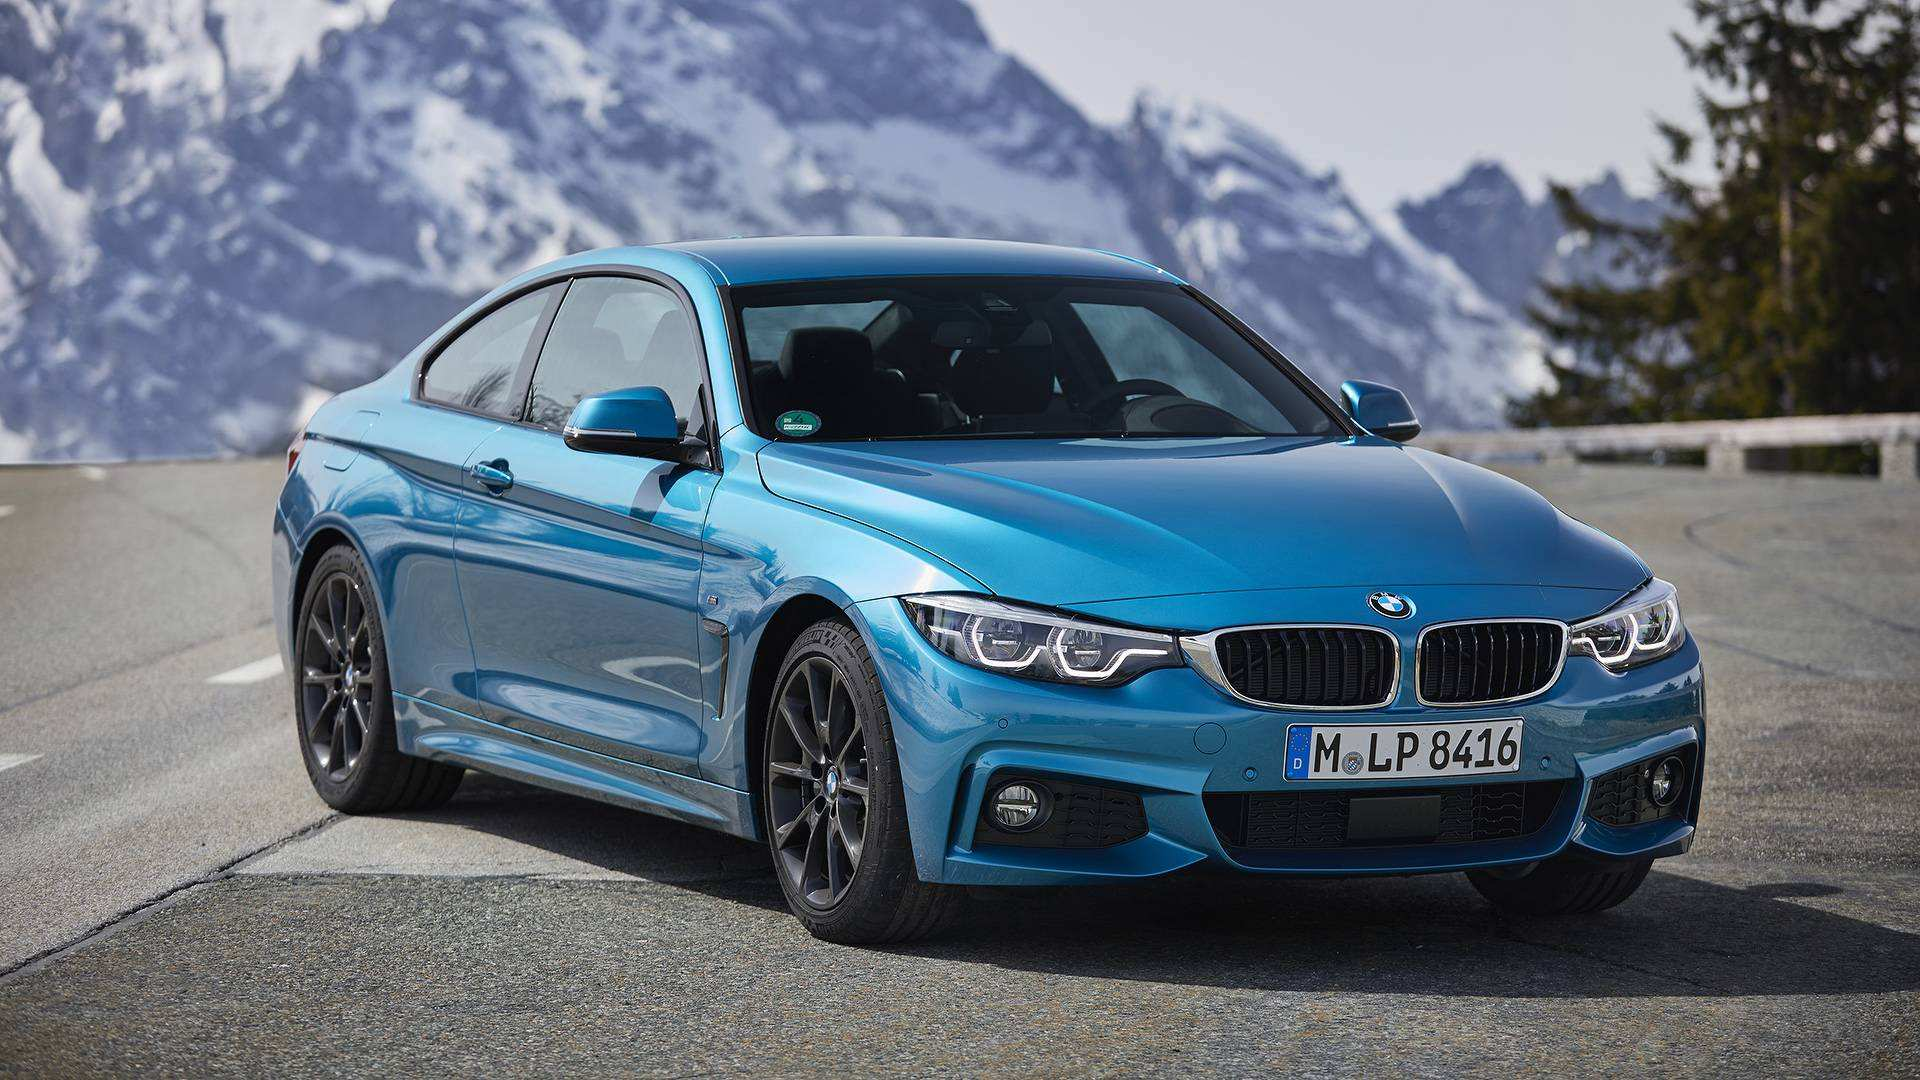 55 A 2019 Bmw 4 Series Release Date Images